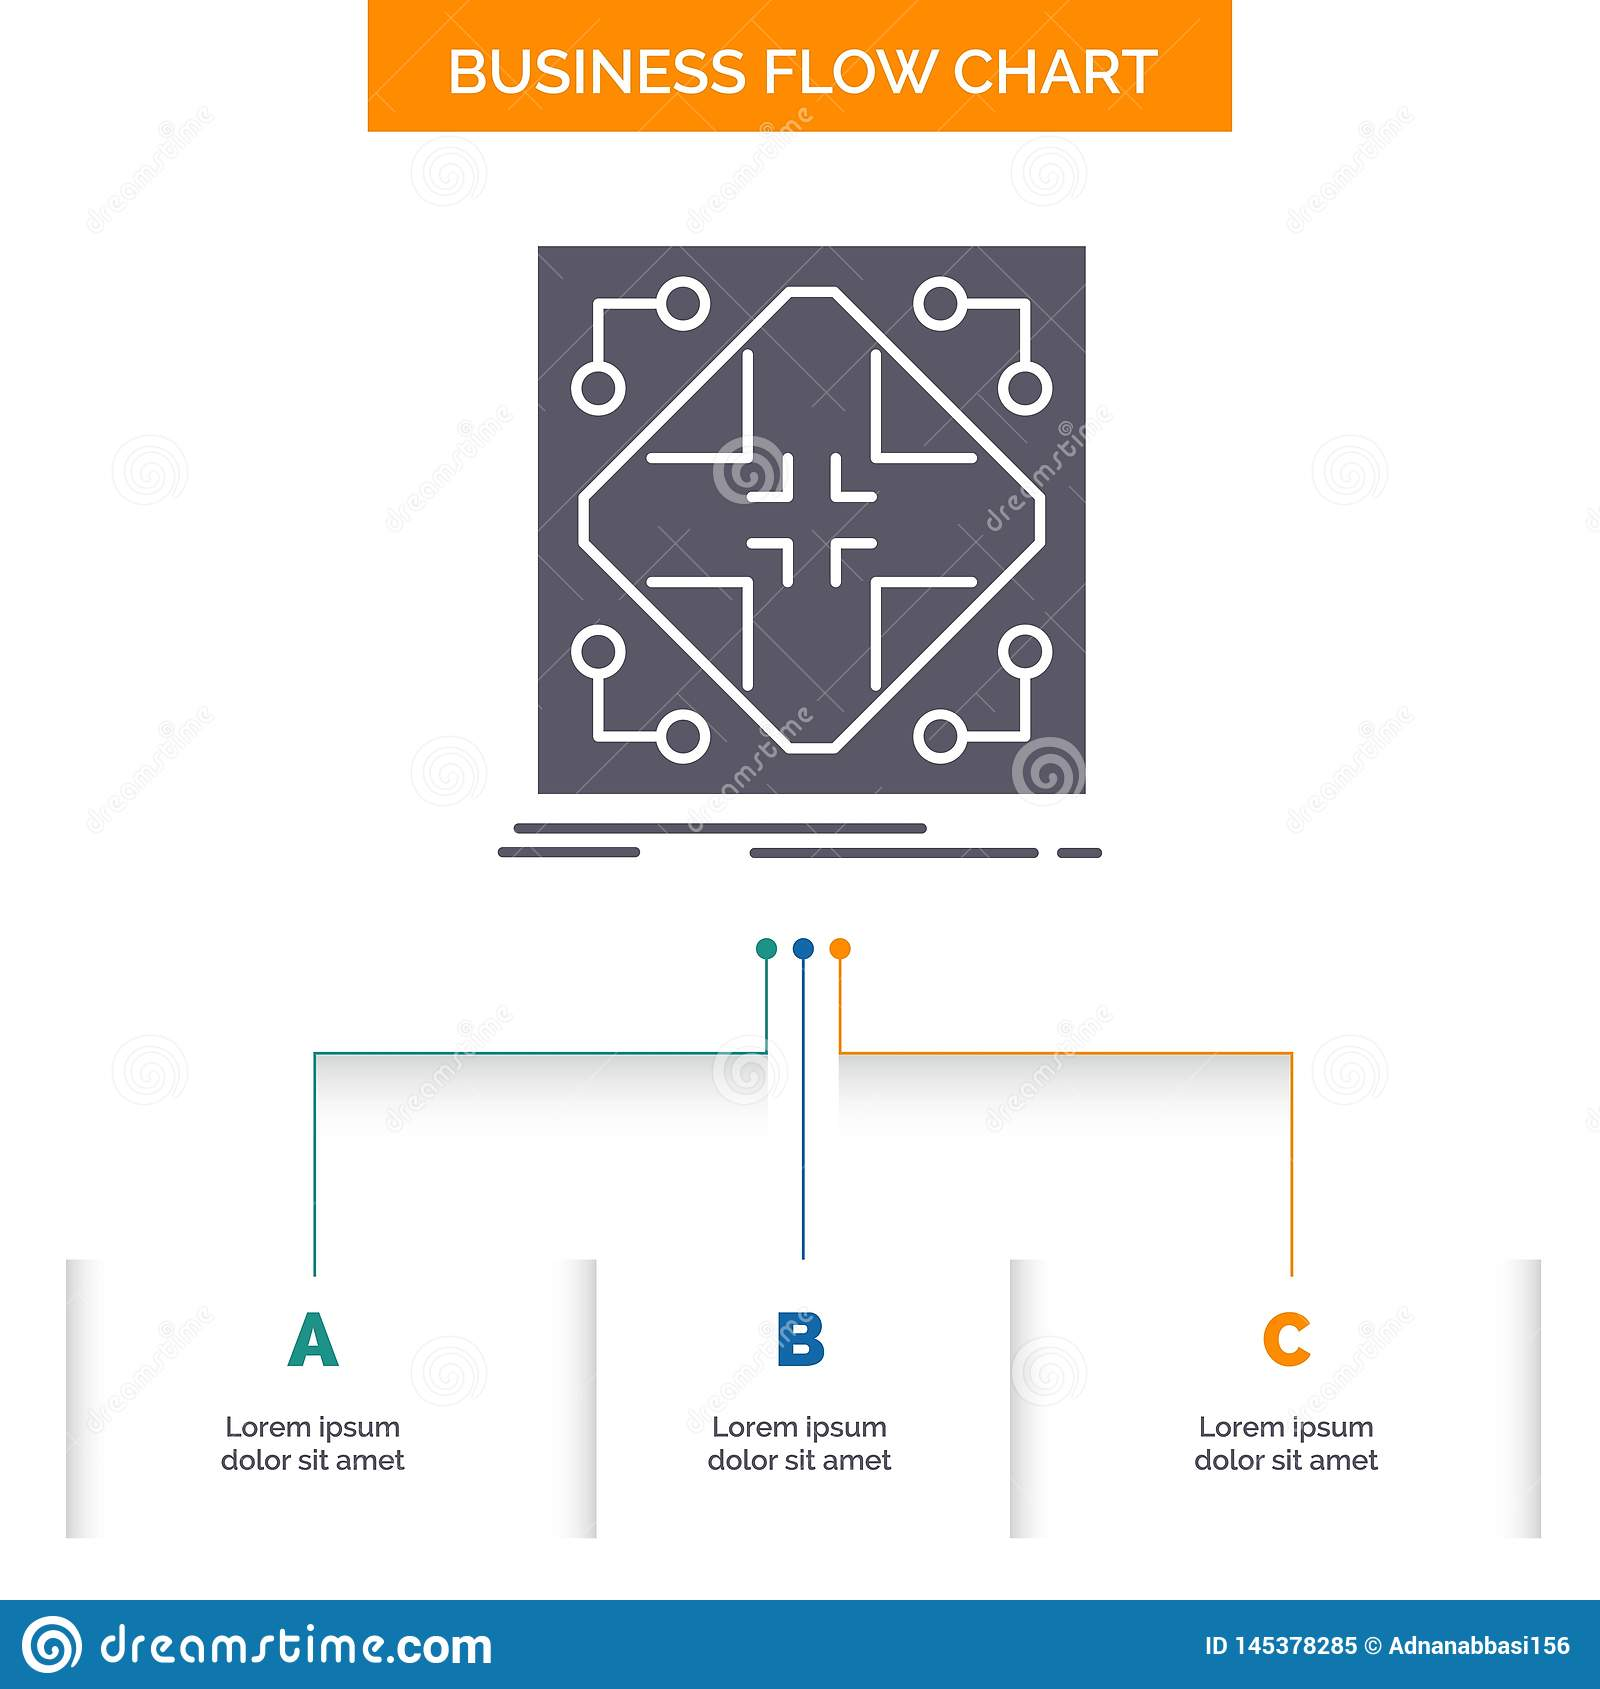 Data Infrastructure Network Matrix Grid Business Flow Chart Design With 3 Steps Glyph Icon For Presentation Background Stock Vector Illustration Of Application Black 145378285